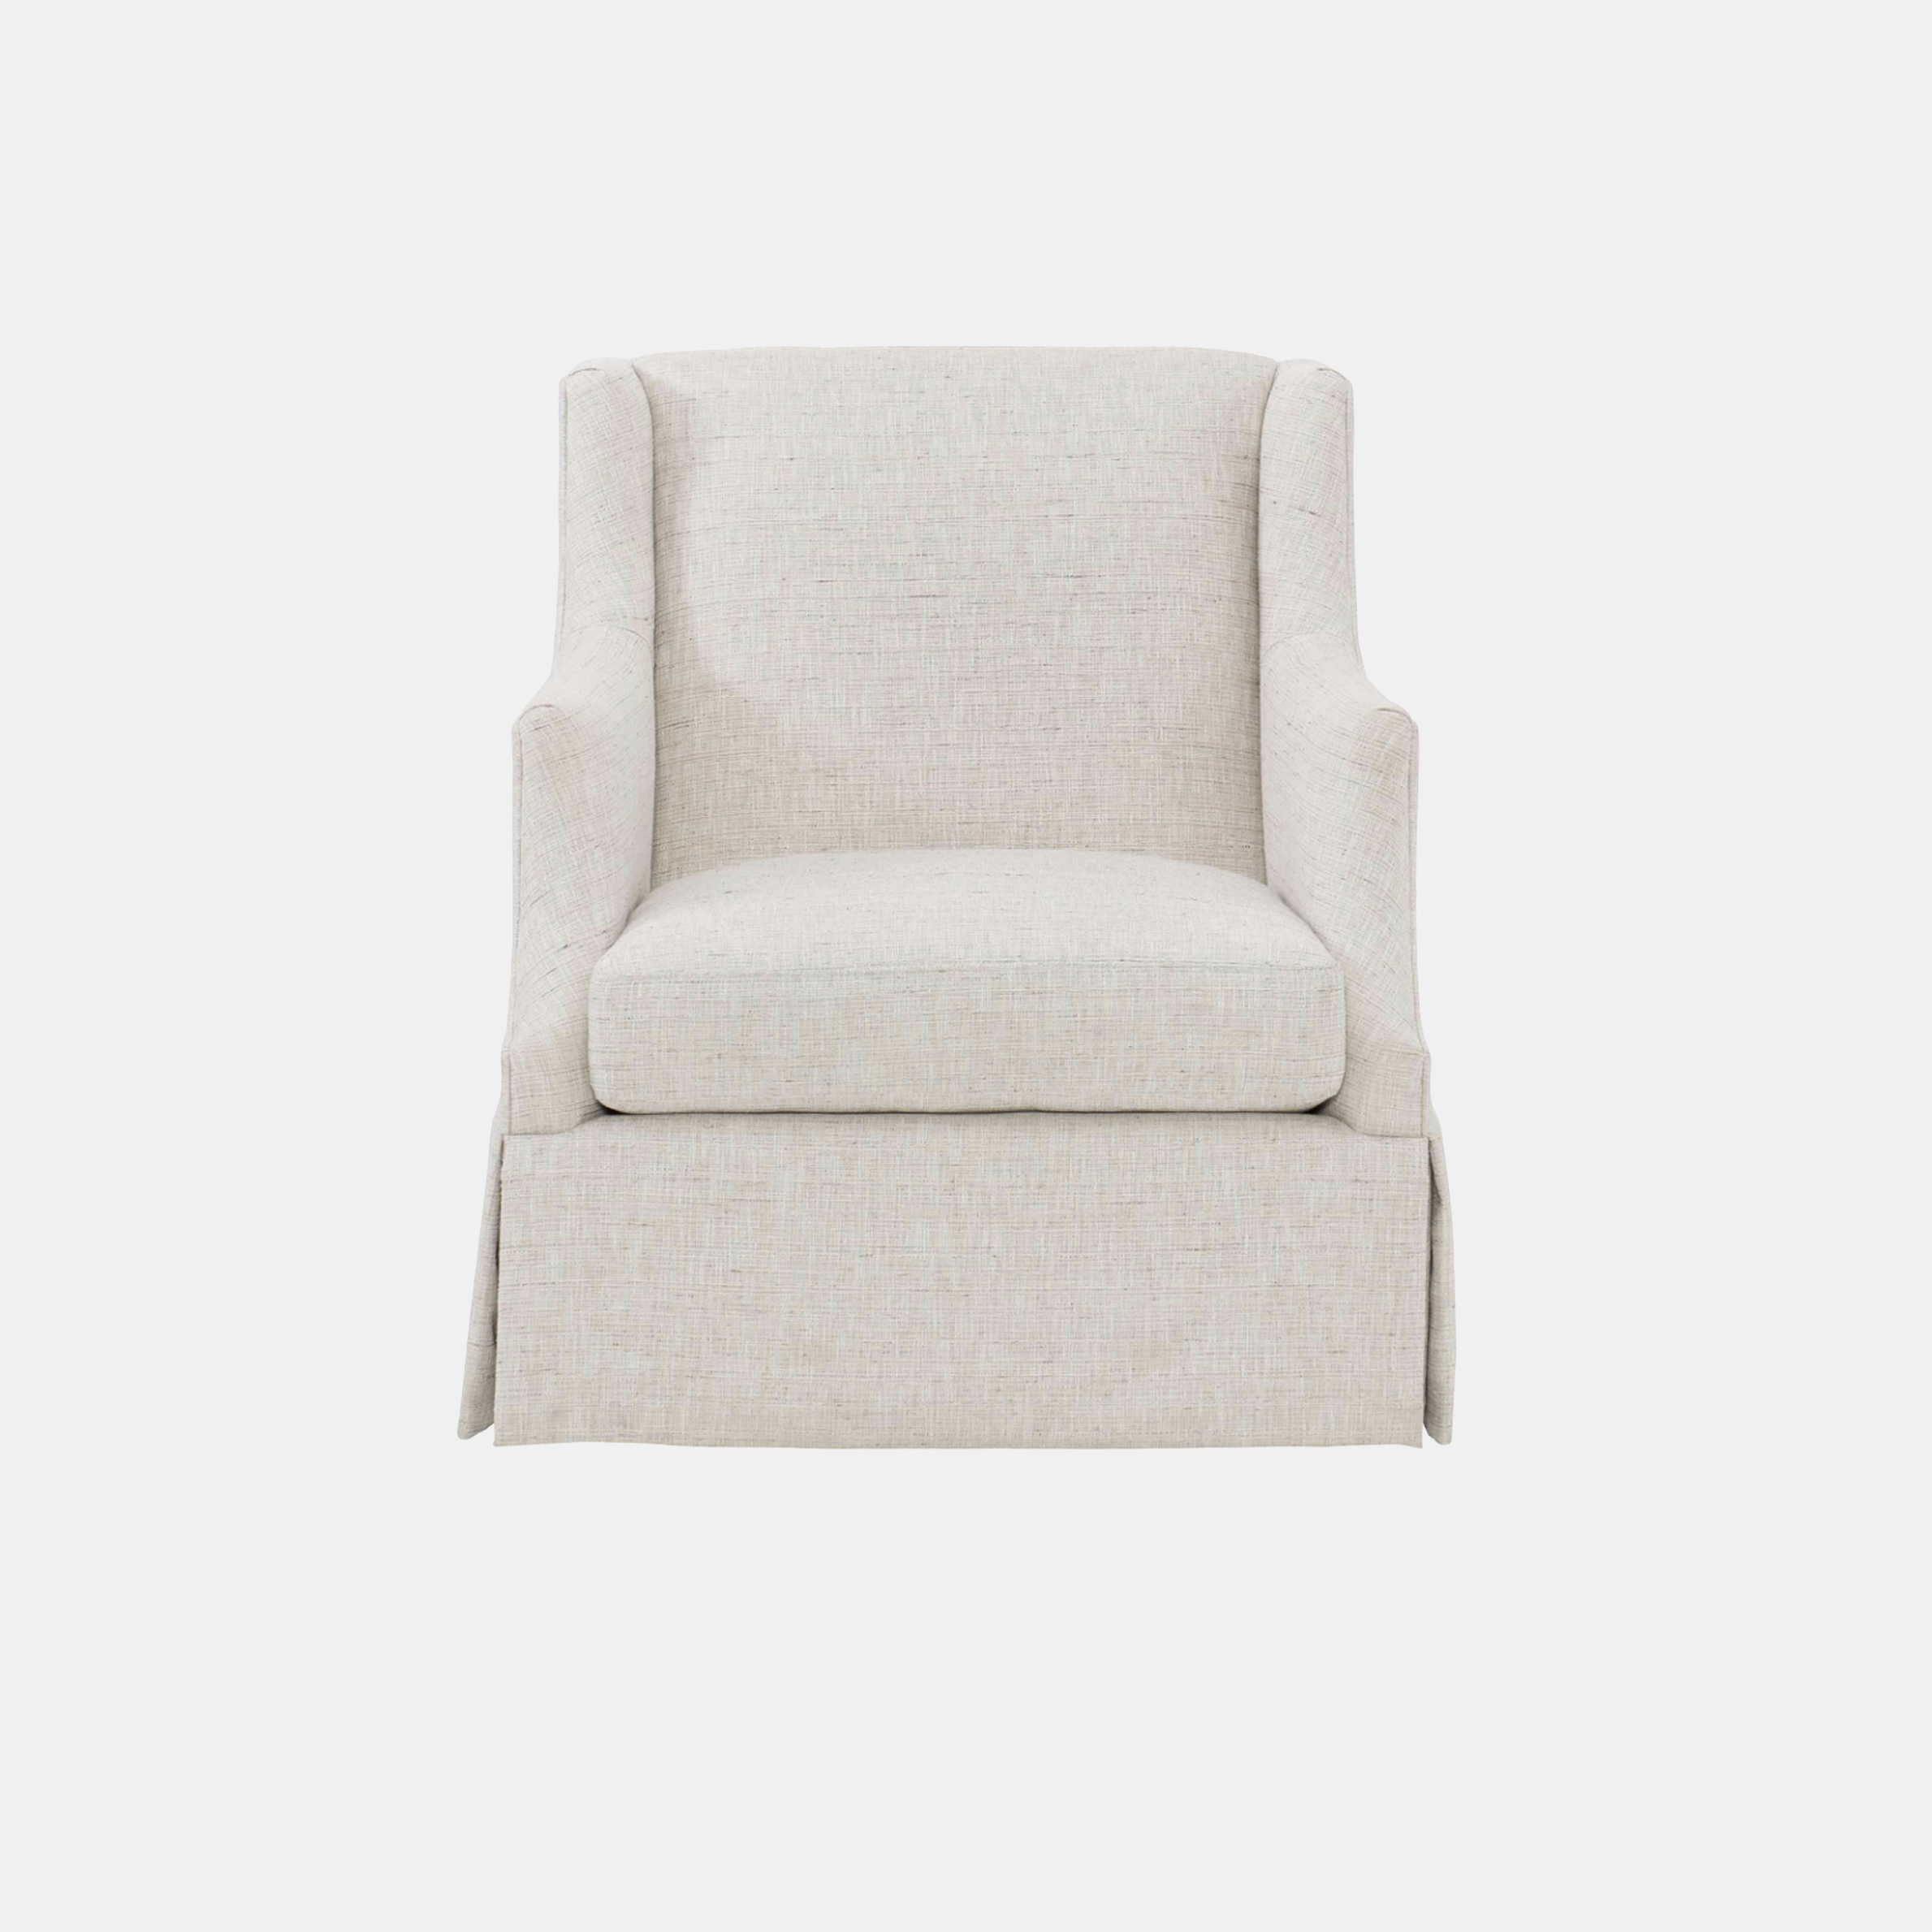 "Sabrina Swivel Chair  30""w x 34""d x 34.5""h Available in fabrics or COM. SKU7784BHT"